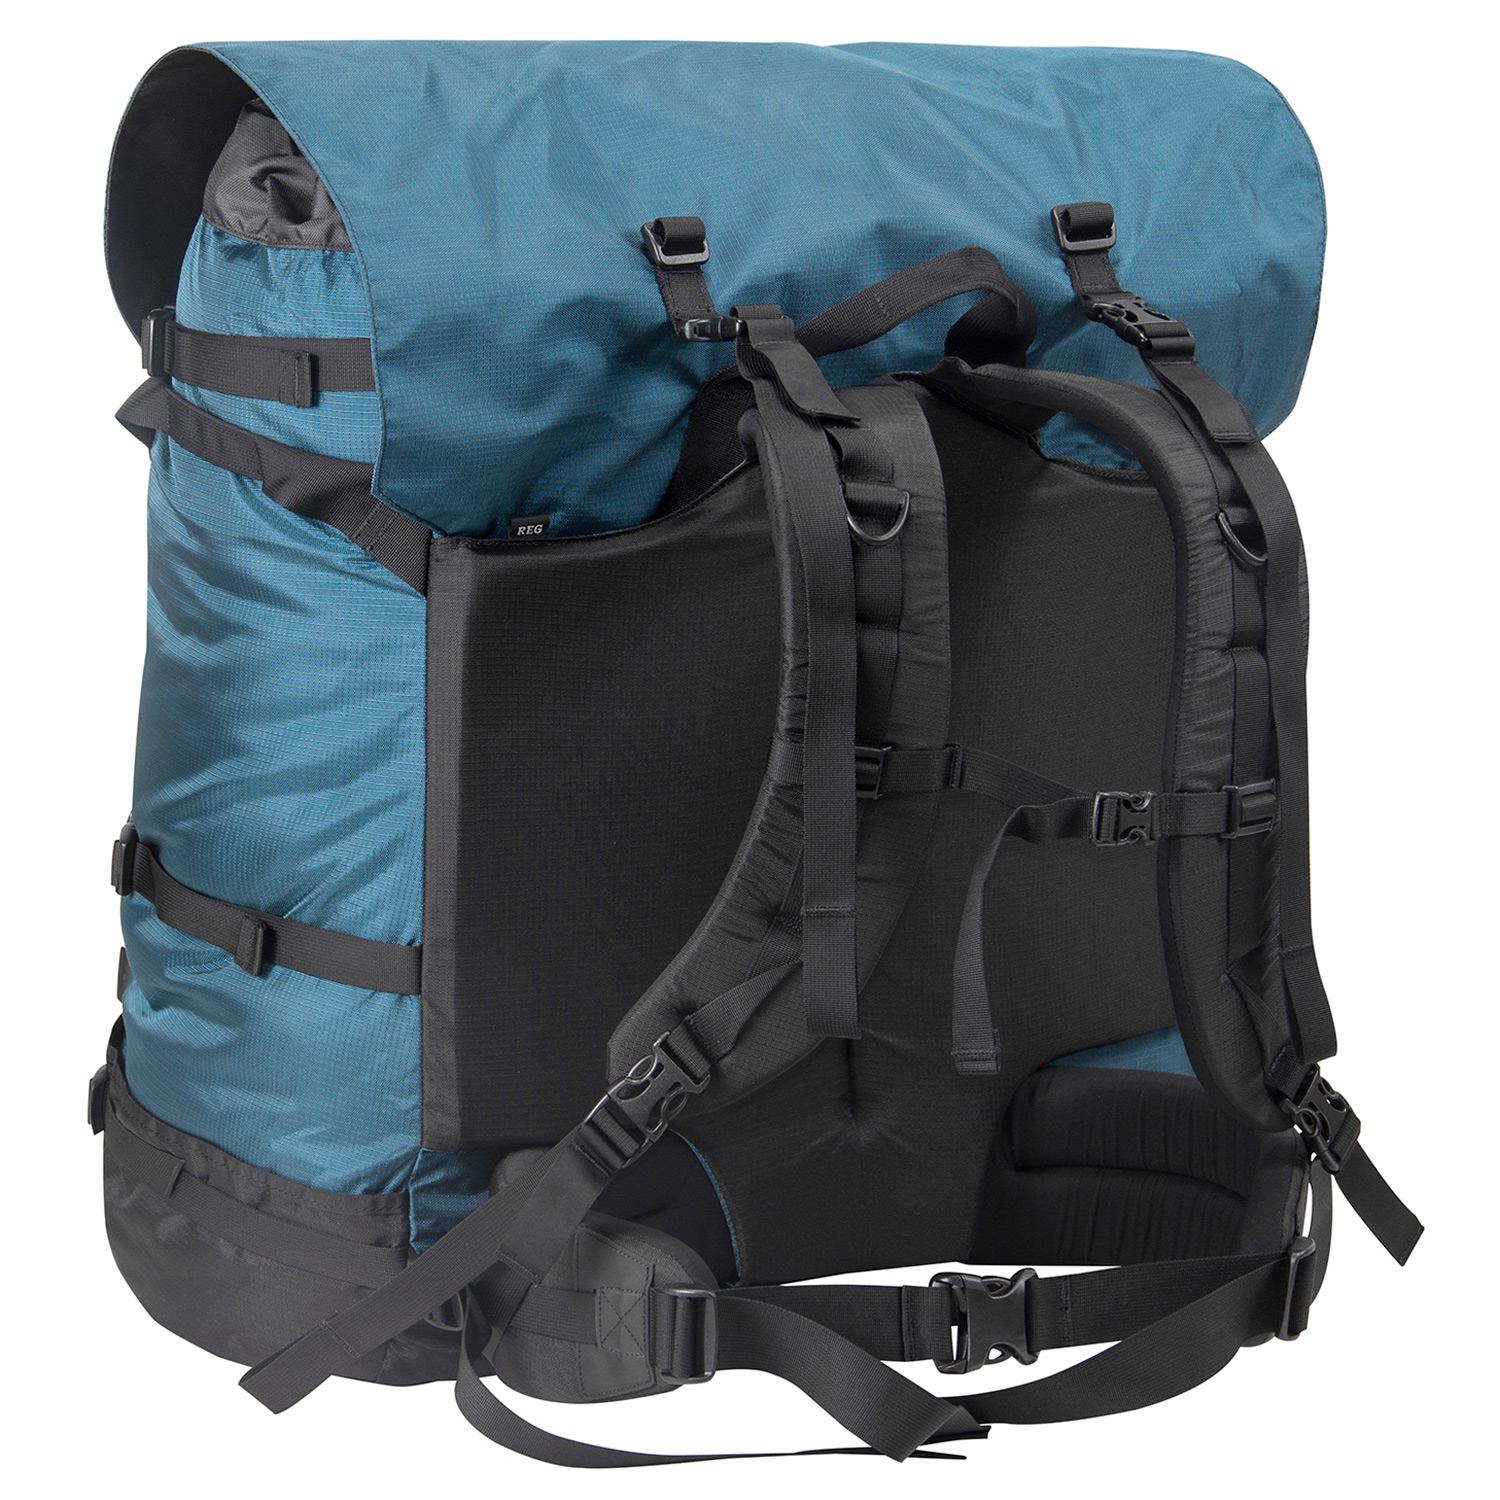 Superior One Portage Pack From Granite Gear